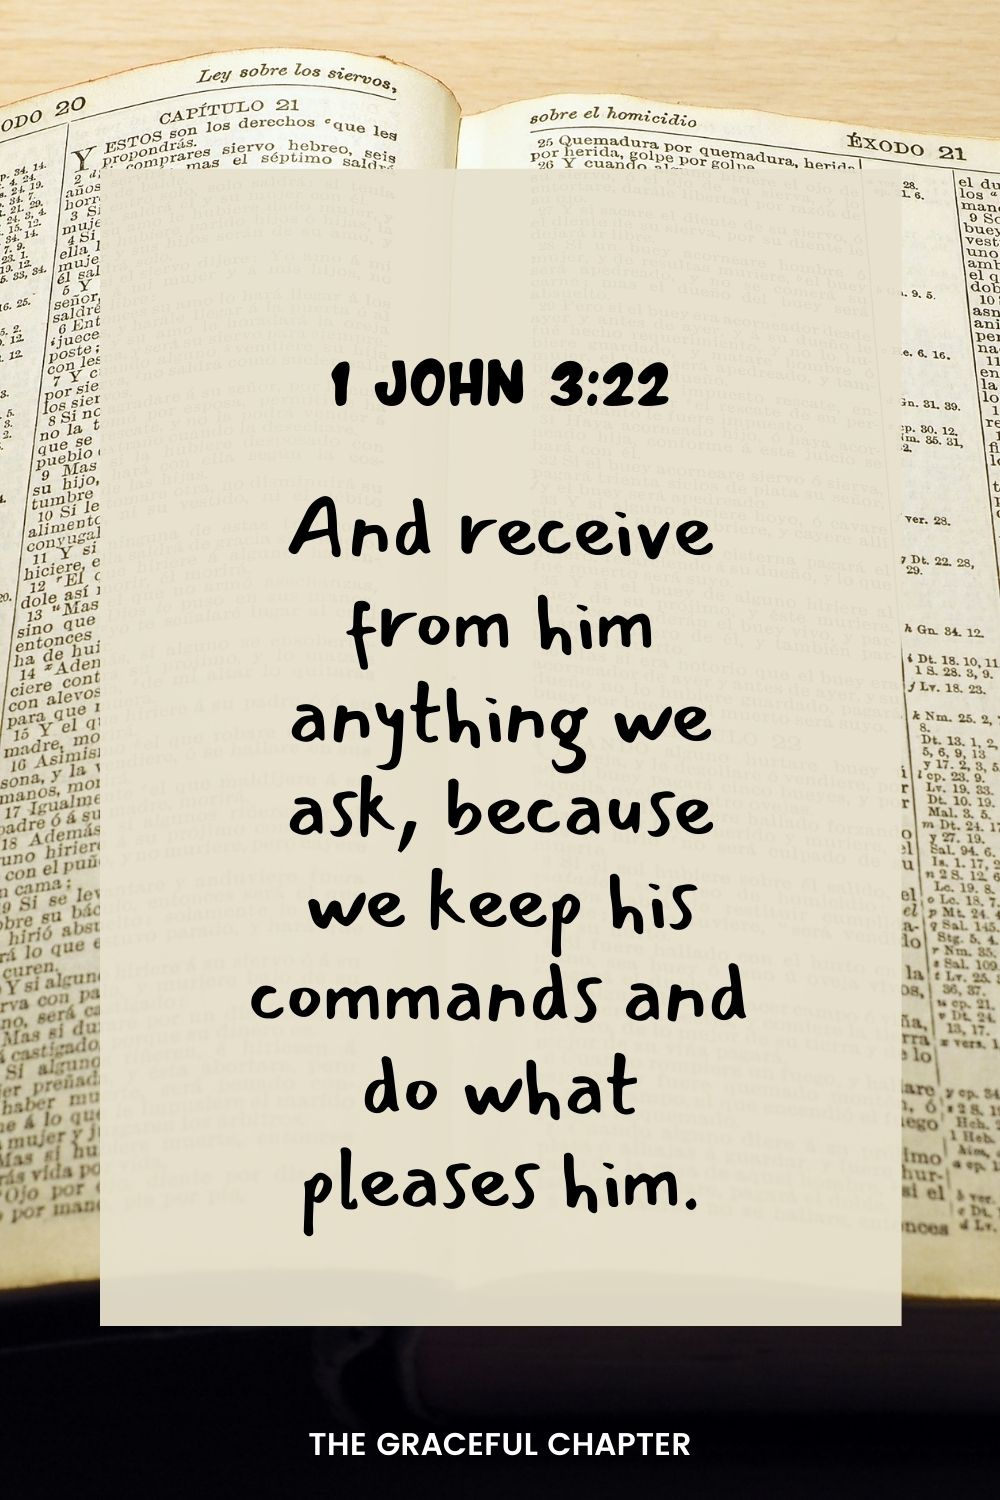 And receive from him anything we ask, because we keep his commands and do what pleases him. 1 John 3:22